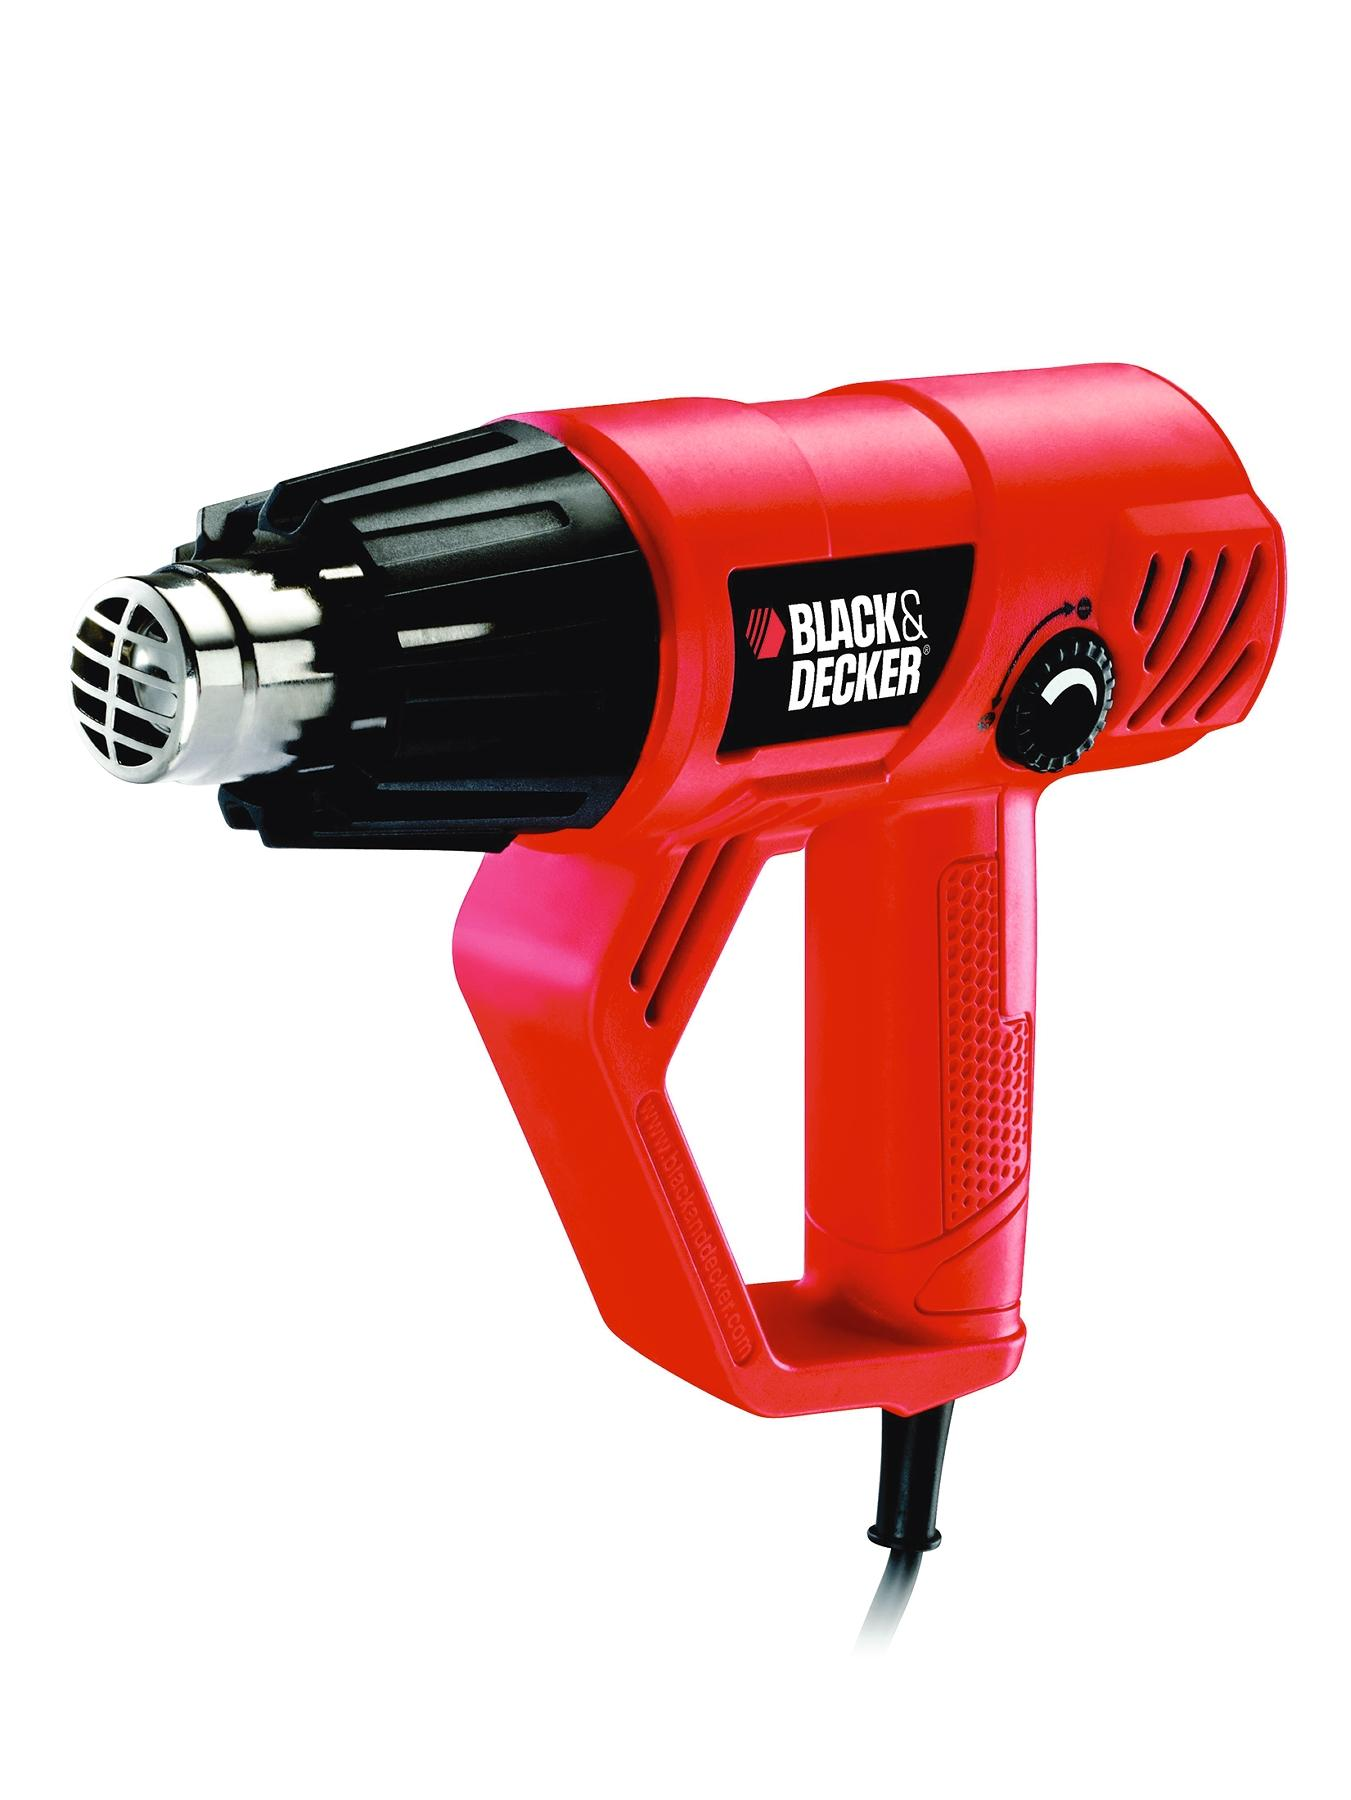 Black & Decker 2000-watt Heatgun Kit